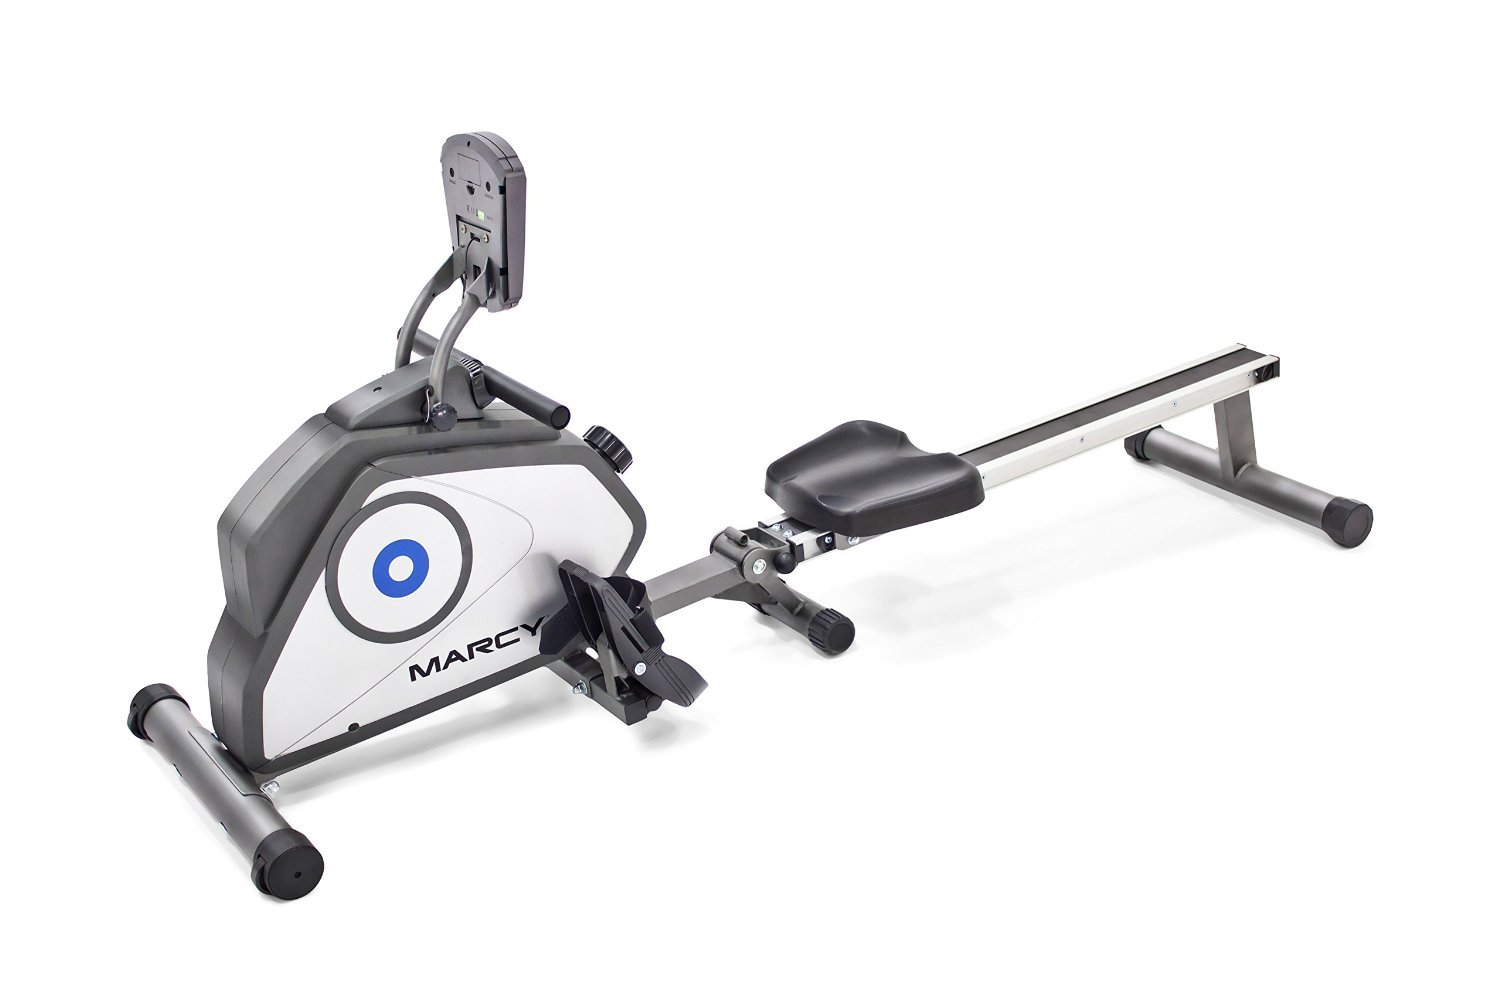 Marcy Foldable 8-Level Magnetic Resistance Rowing Machine with Transport Wheels NS-40503RW by Marcy